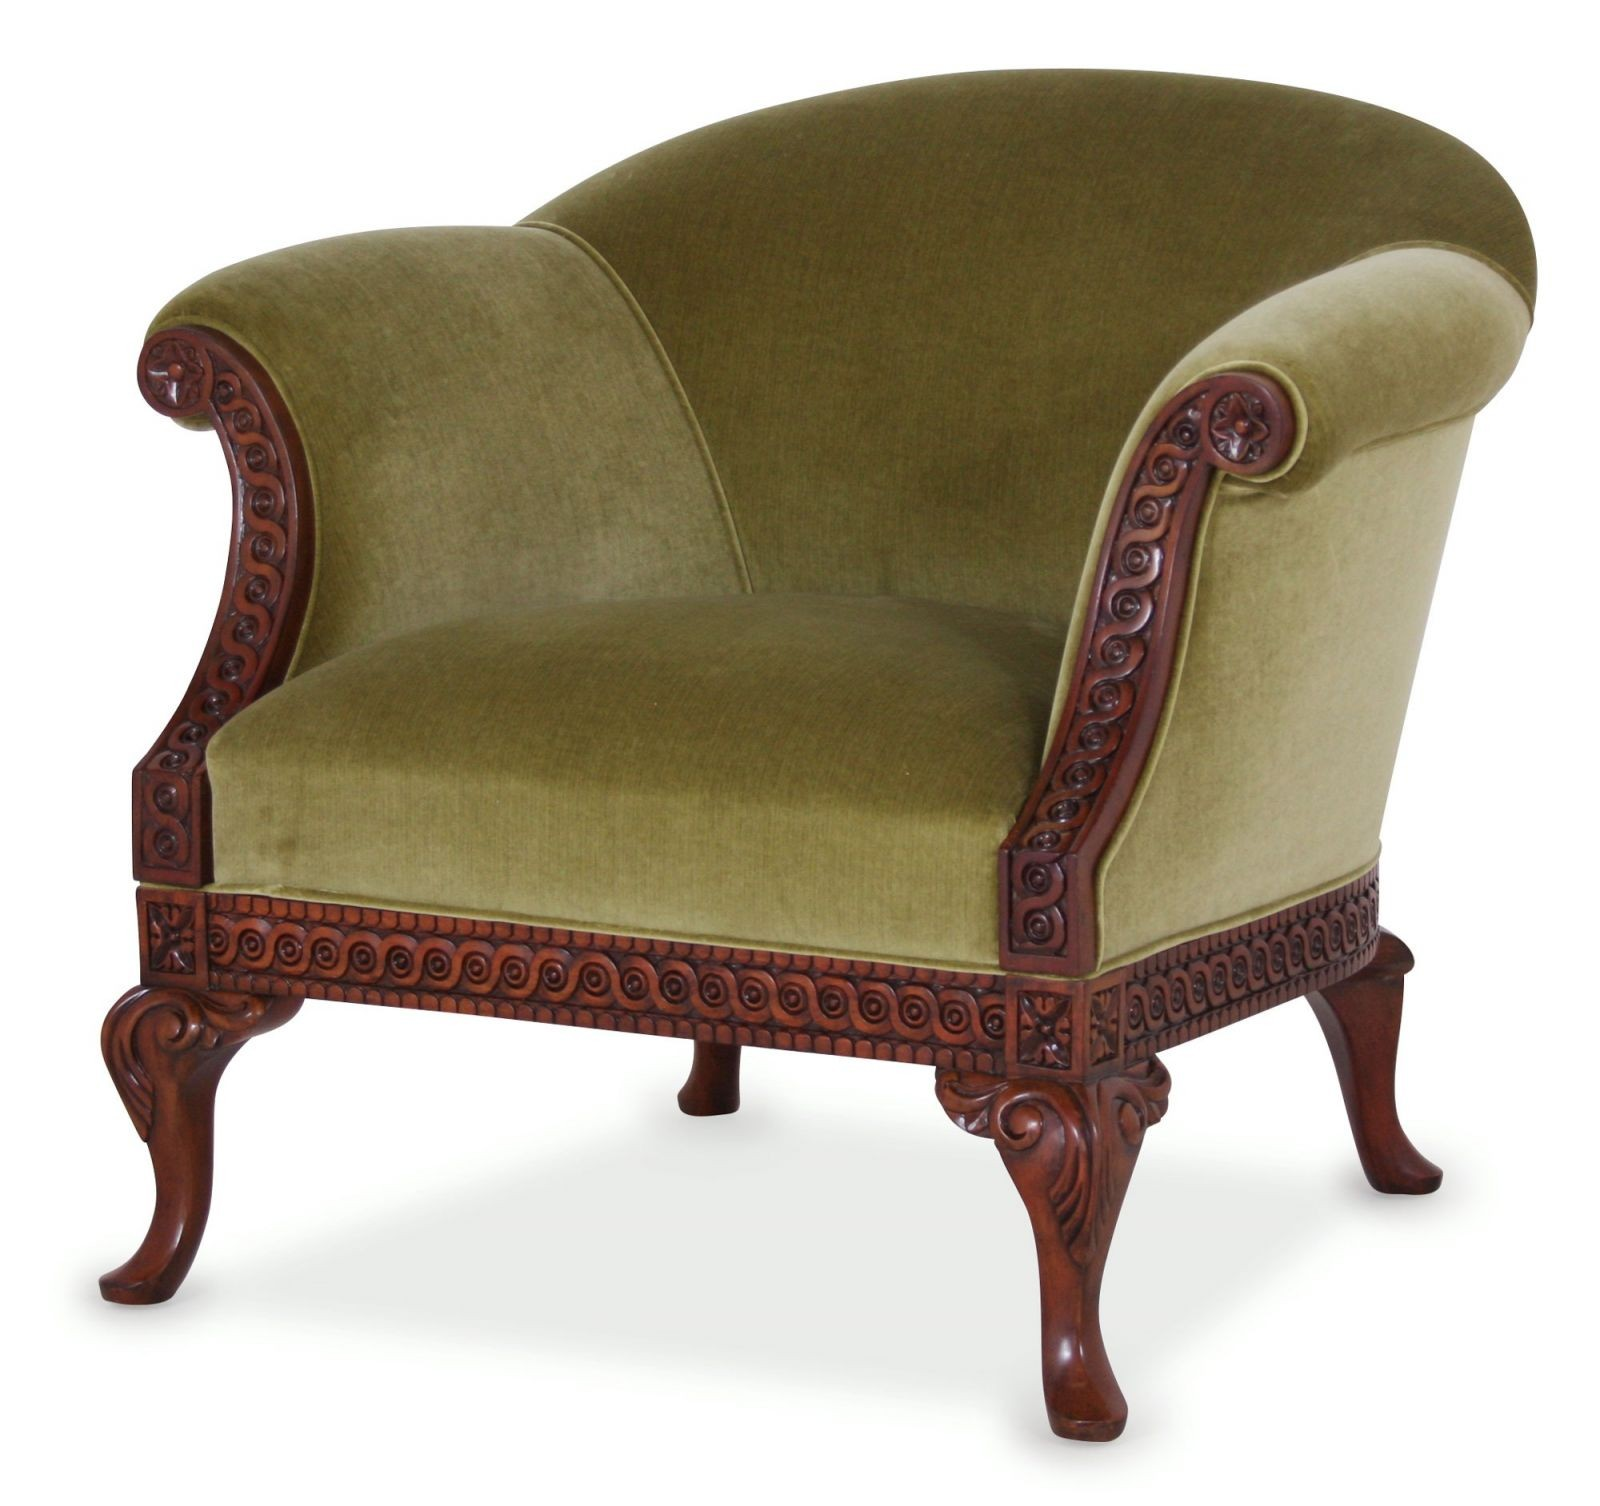 Pride Regency Style Chair In Riffle Vintage Velvet Fabric